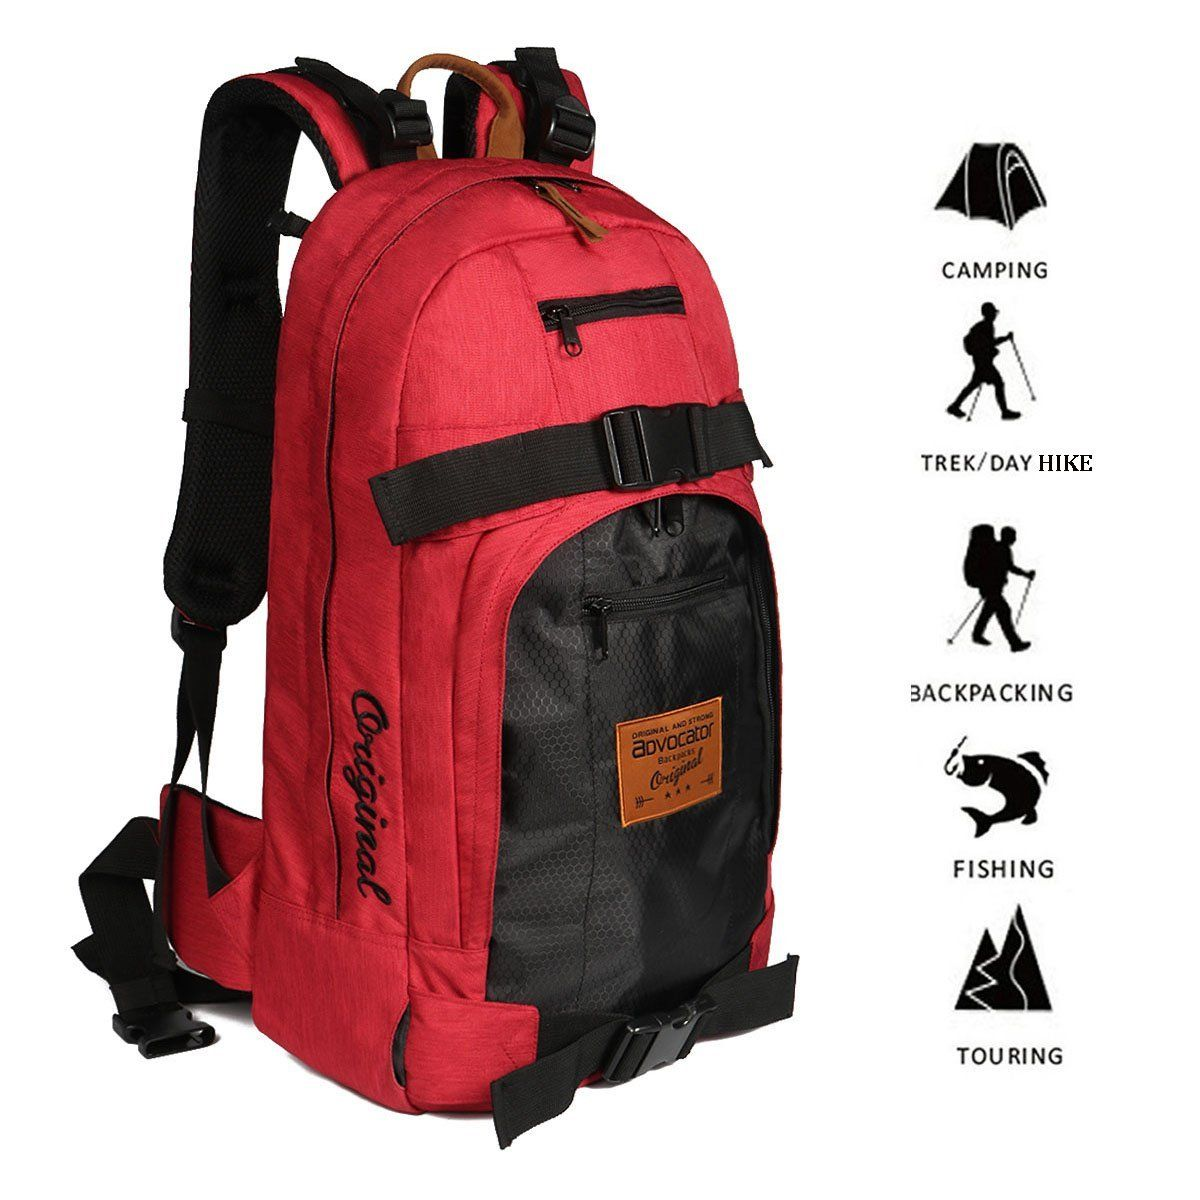 Advocator Water Resistant Hiking Backpack Outdoor Camping